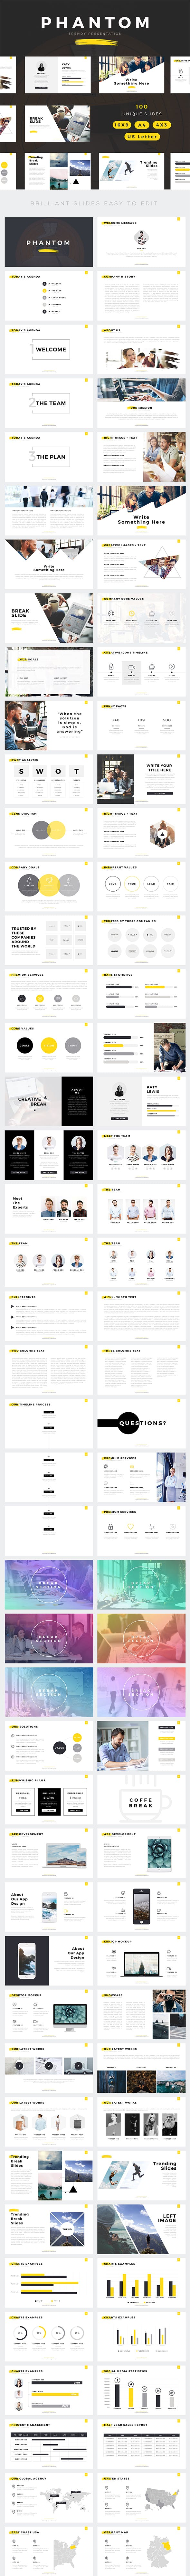 phantom modern powerpoint template by slidefusion graphicriver